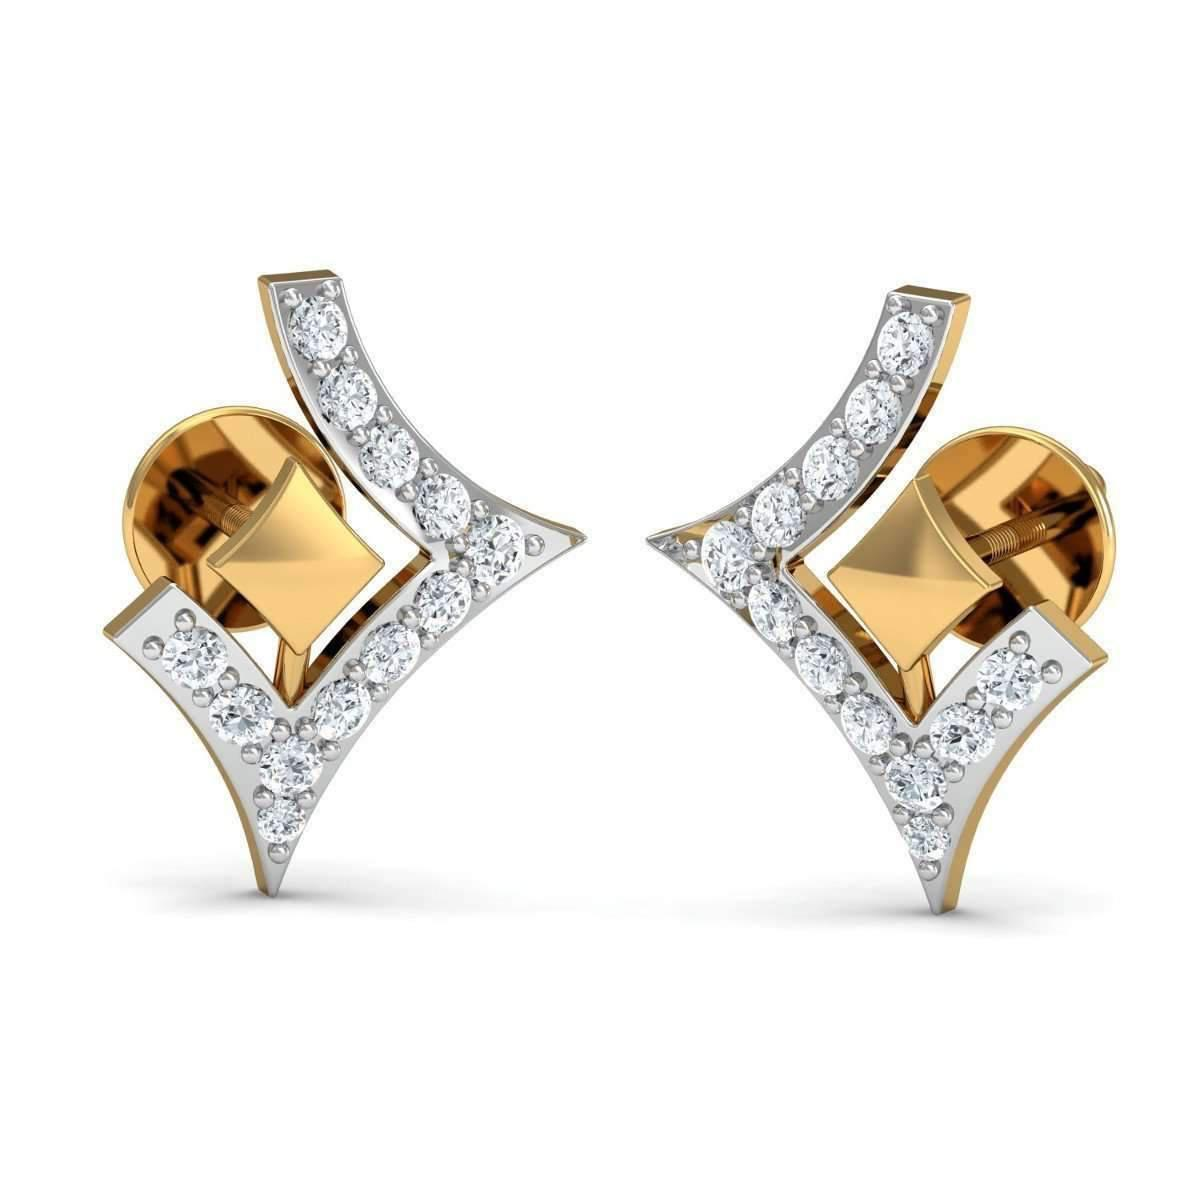 Diamoire Jewels Brilliant Cut Pave Diamond Earrings in 10kt Yellow Gold